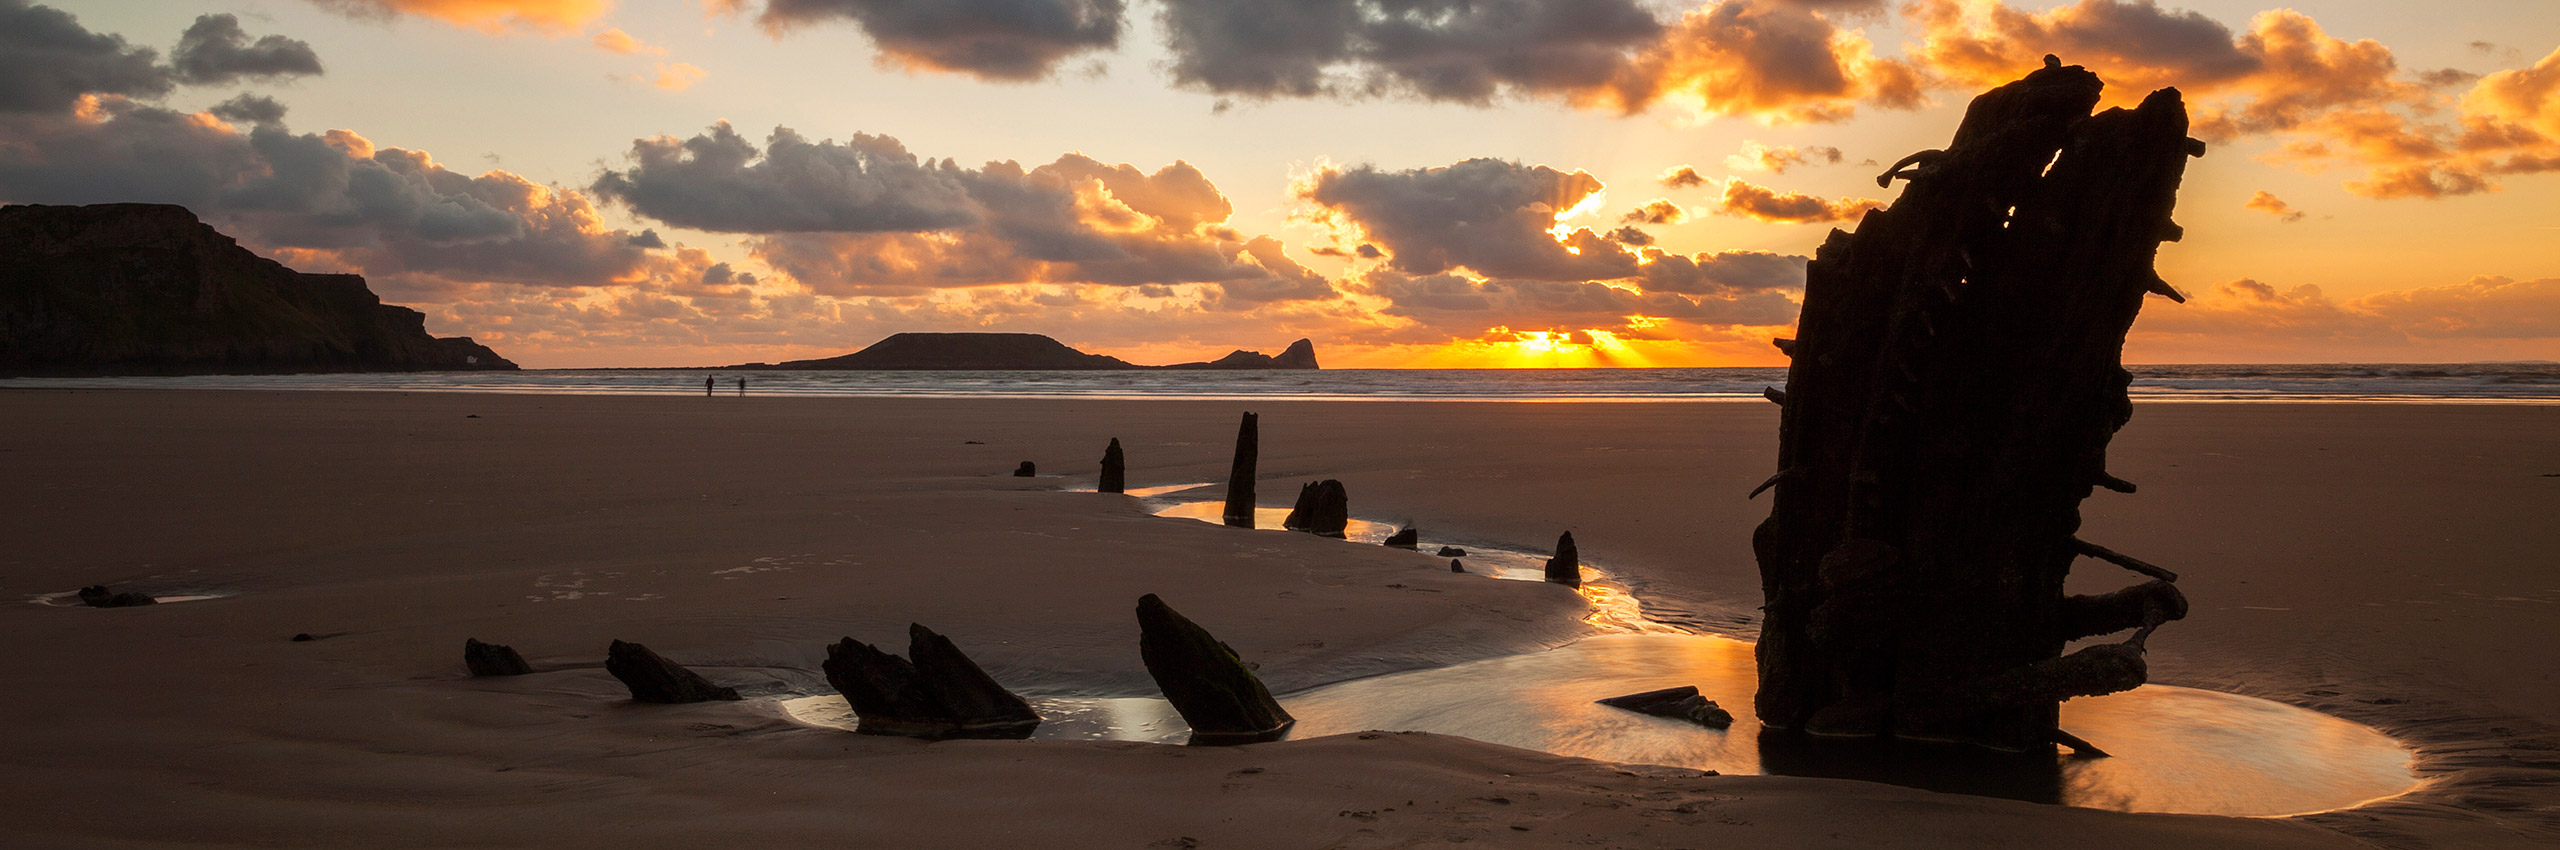 FCR-449420 | UK/Wales, Rhossili Bay | © Billy Stock/4Corners